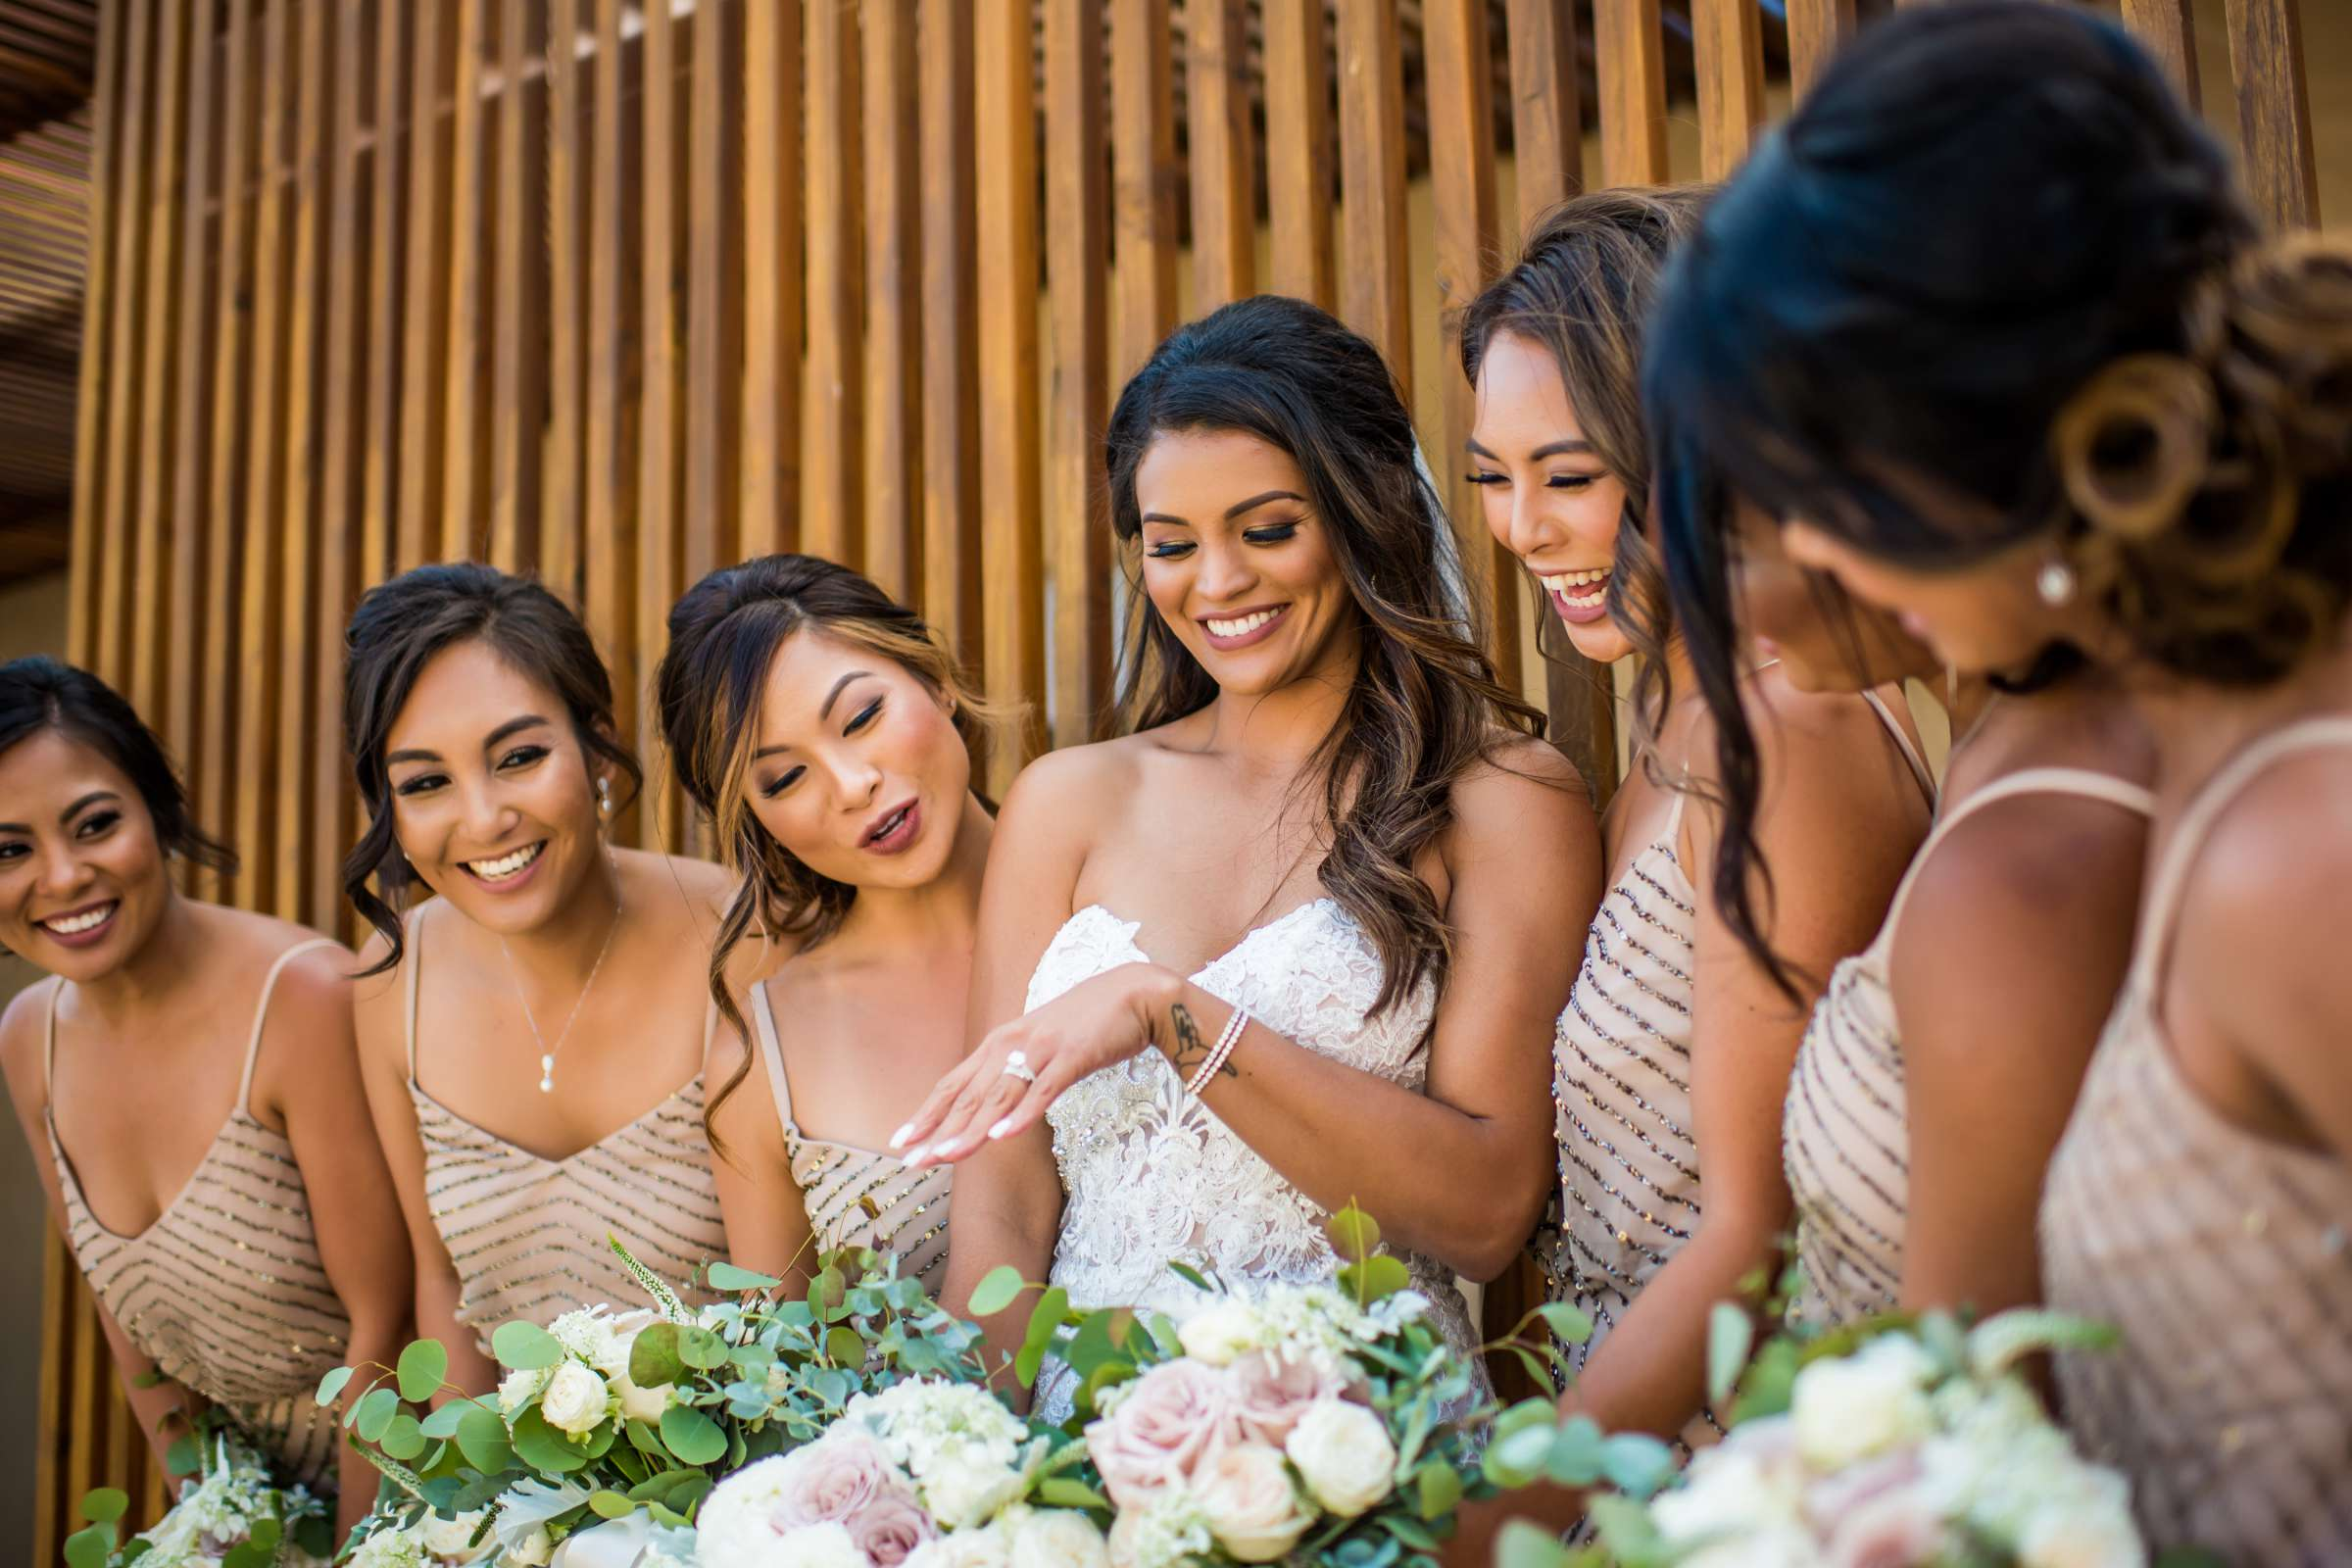 Scripps Seaside Forum Wedding coordinated by Lavish Weddings, Cindy and Justin Wedding Photo #381838 by True Photography